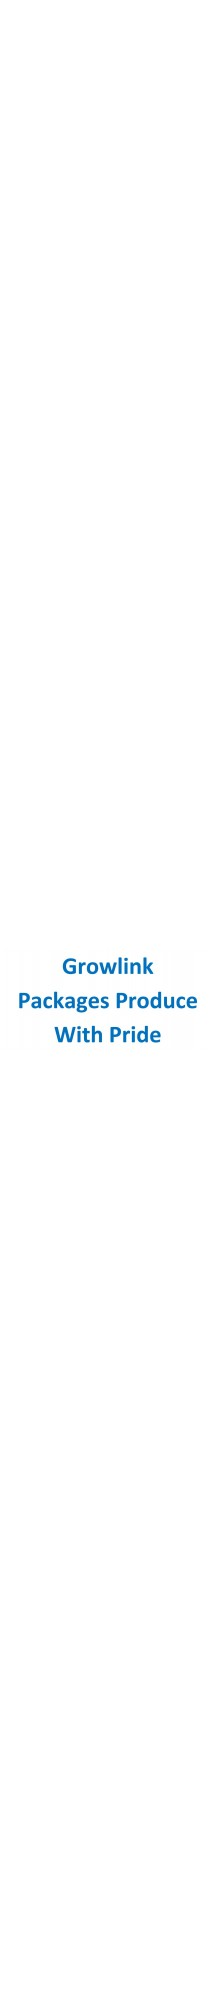 Growlink Packages Produce with Pride